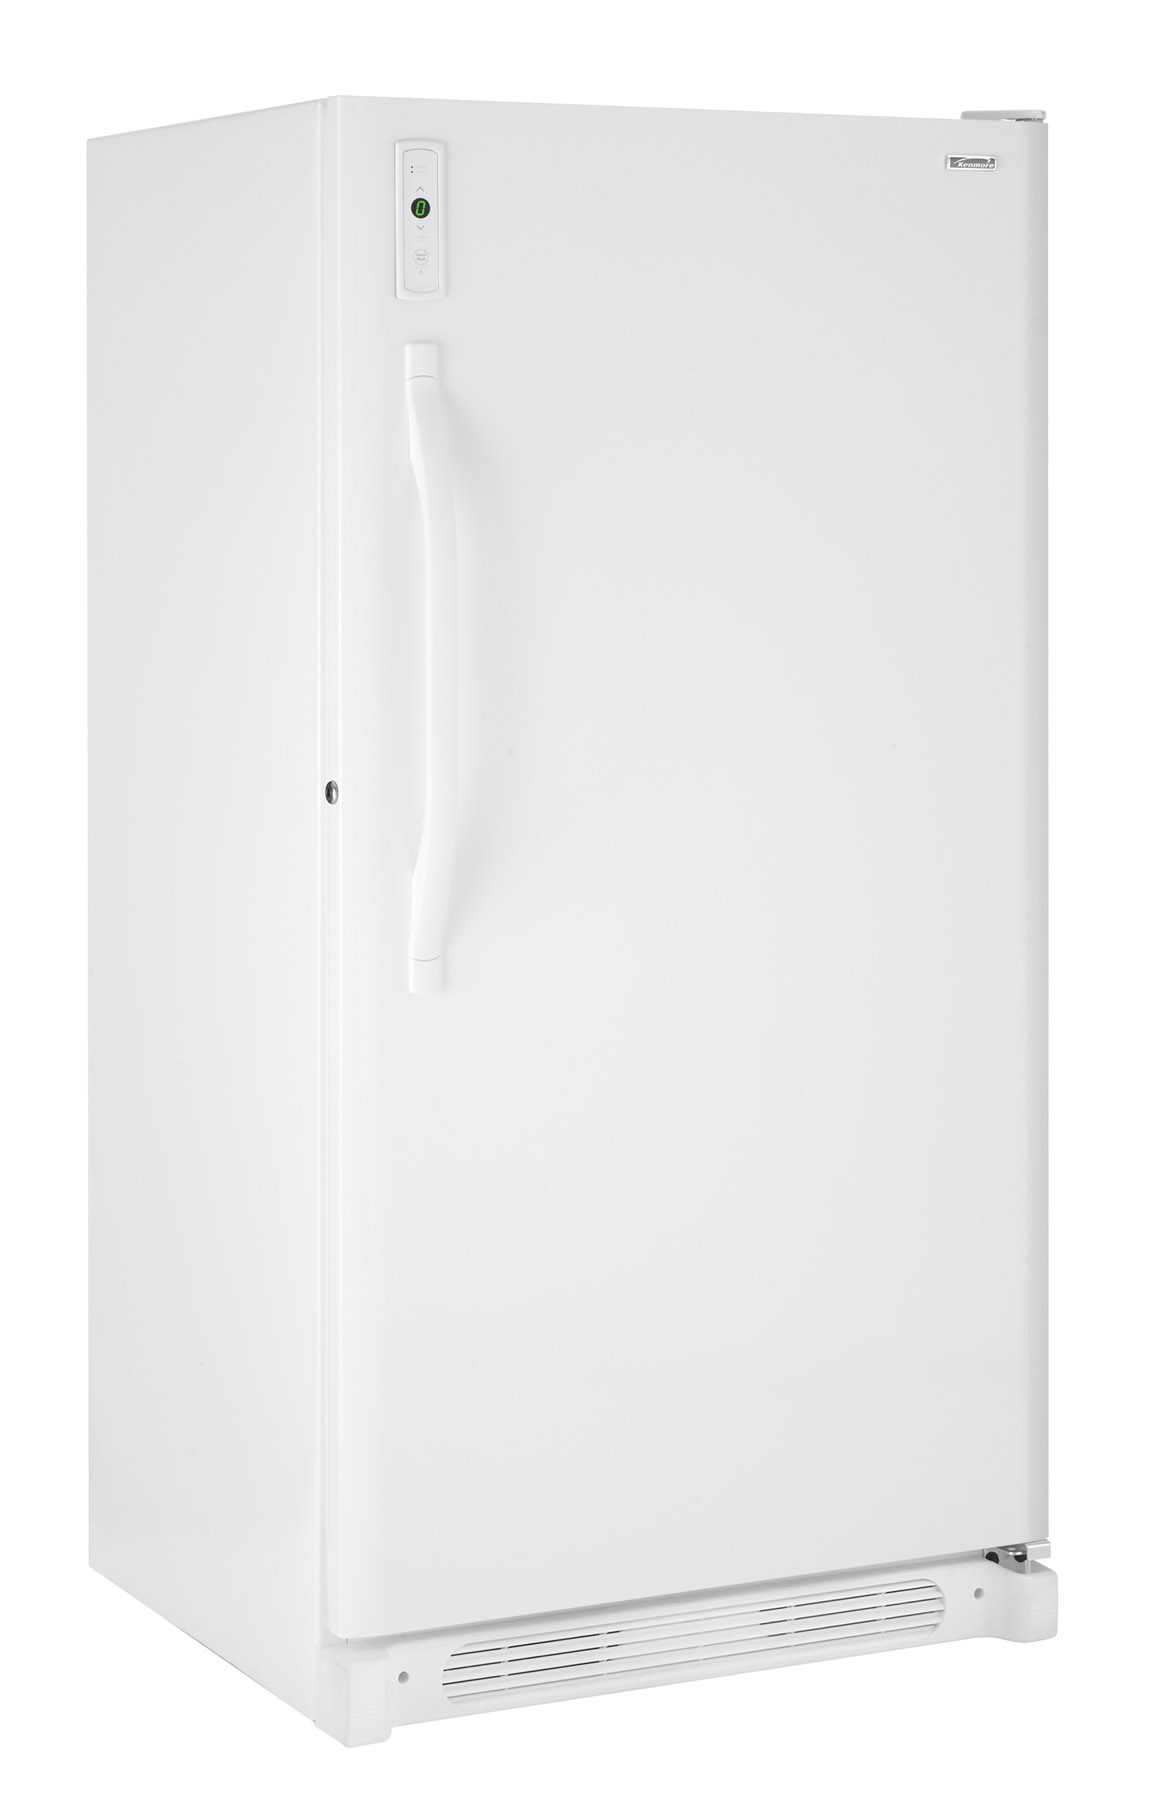 Kenmore 16.7 cu. ft. Upright Freezer (2878)